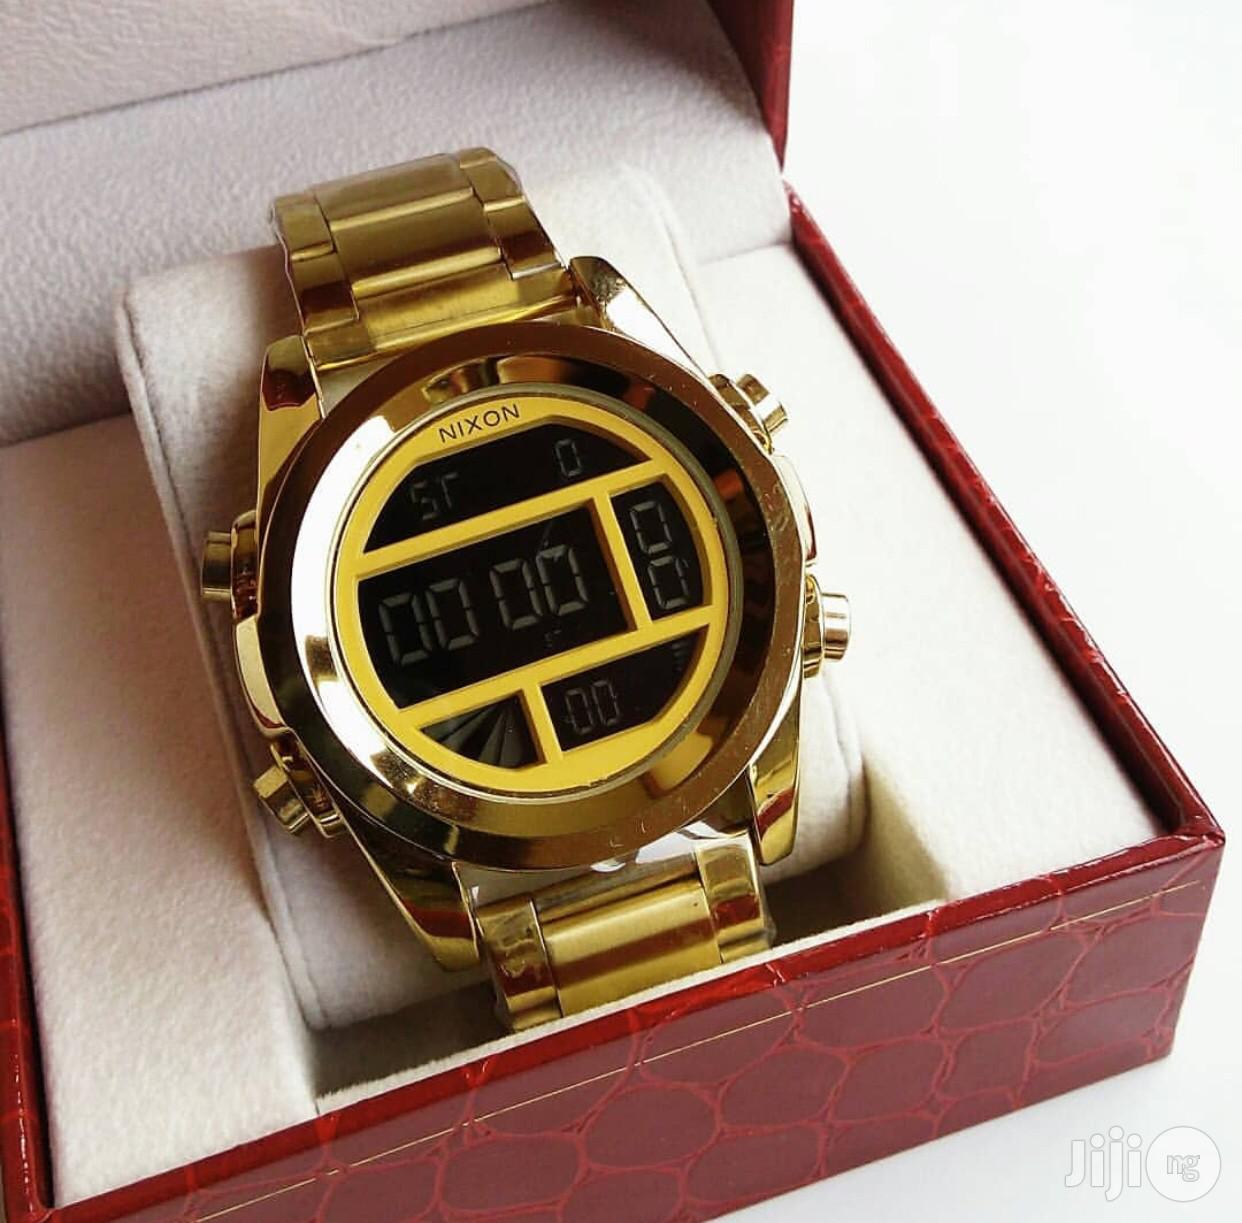 Nixon Gold Digital Watch | Watches for sale in Surulere, Lagos State, Nigeria